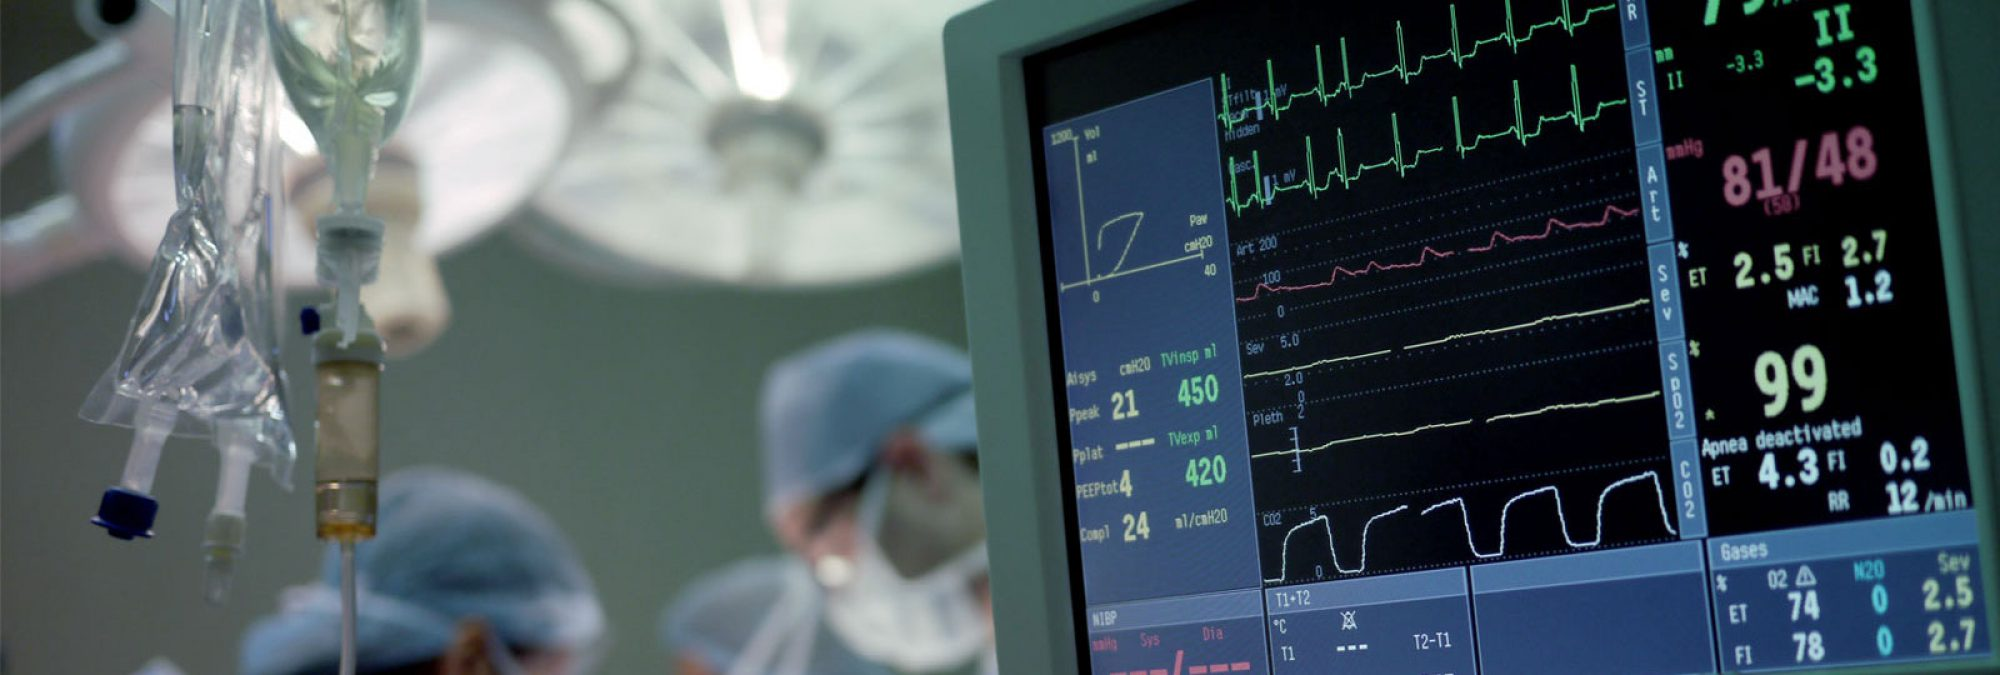 Chronicles of Cardiac ICU Nursing: the vents, the gtts, and the chest tubes